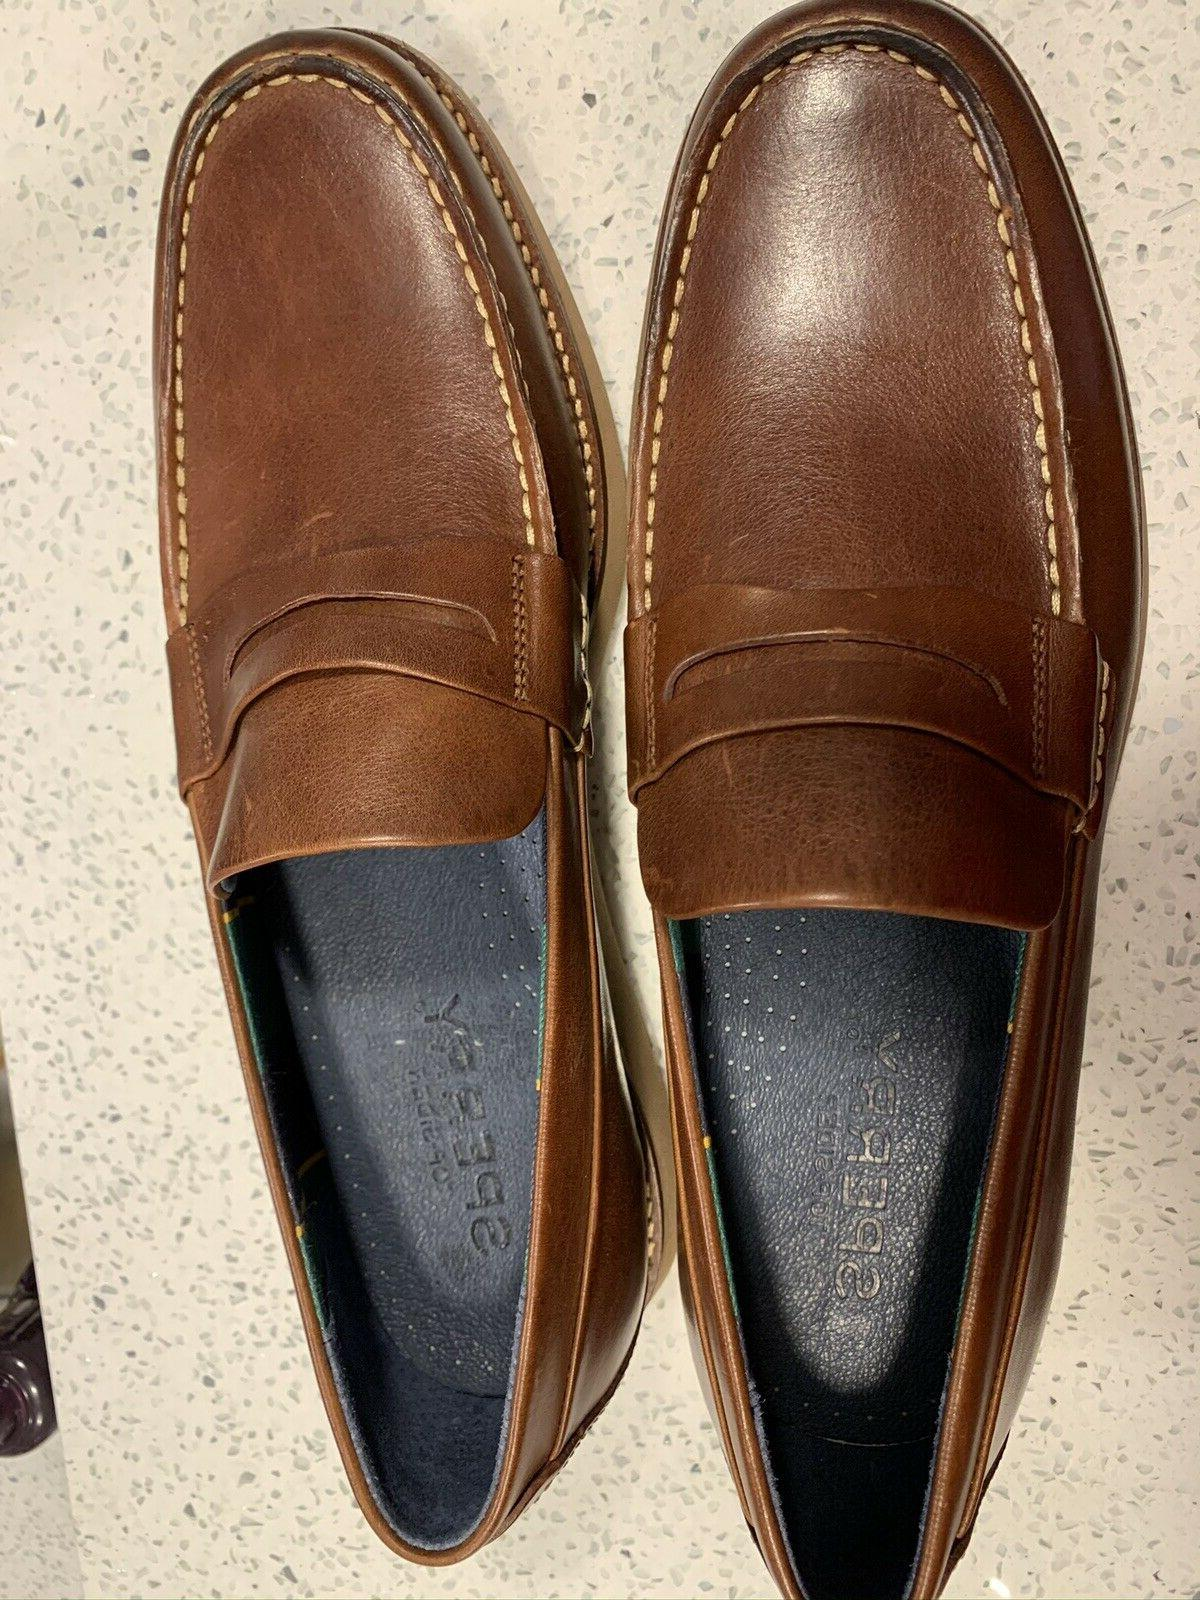 New Top Sider Penny Loafers Sz 11